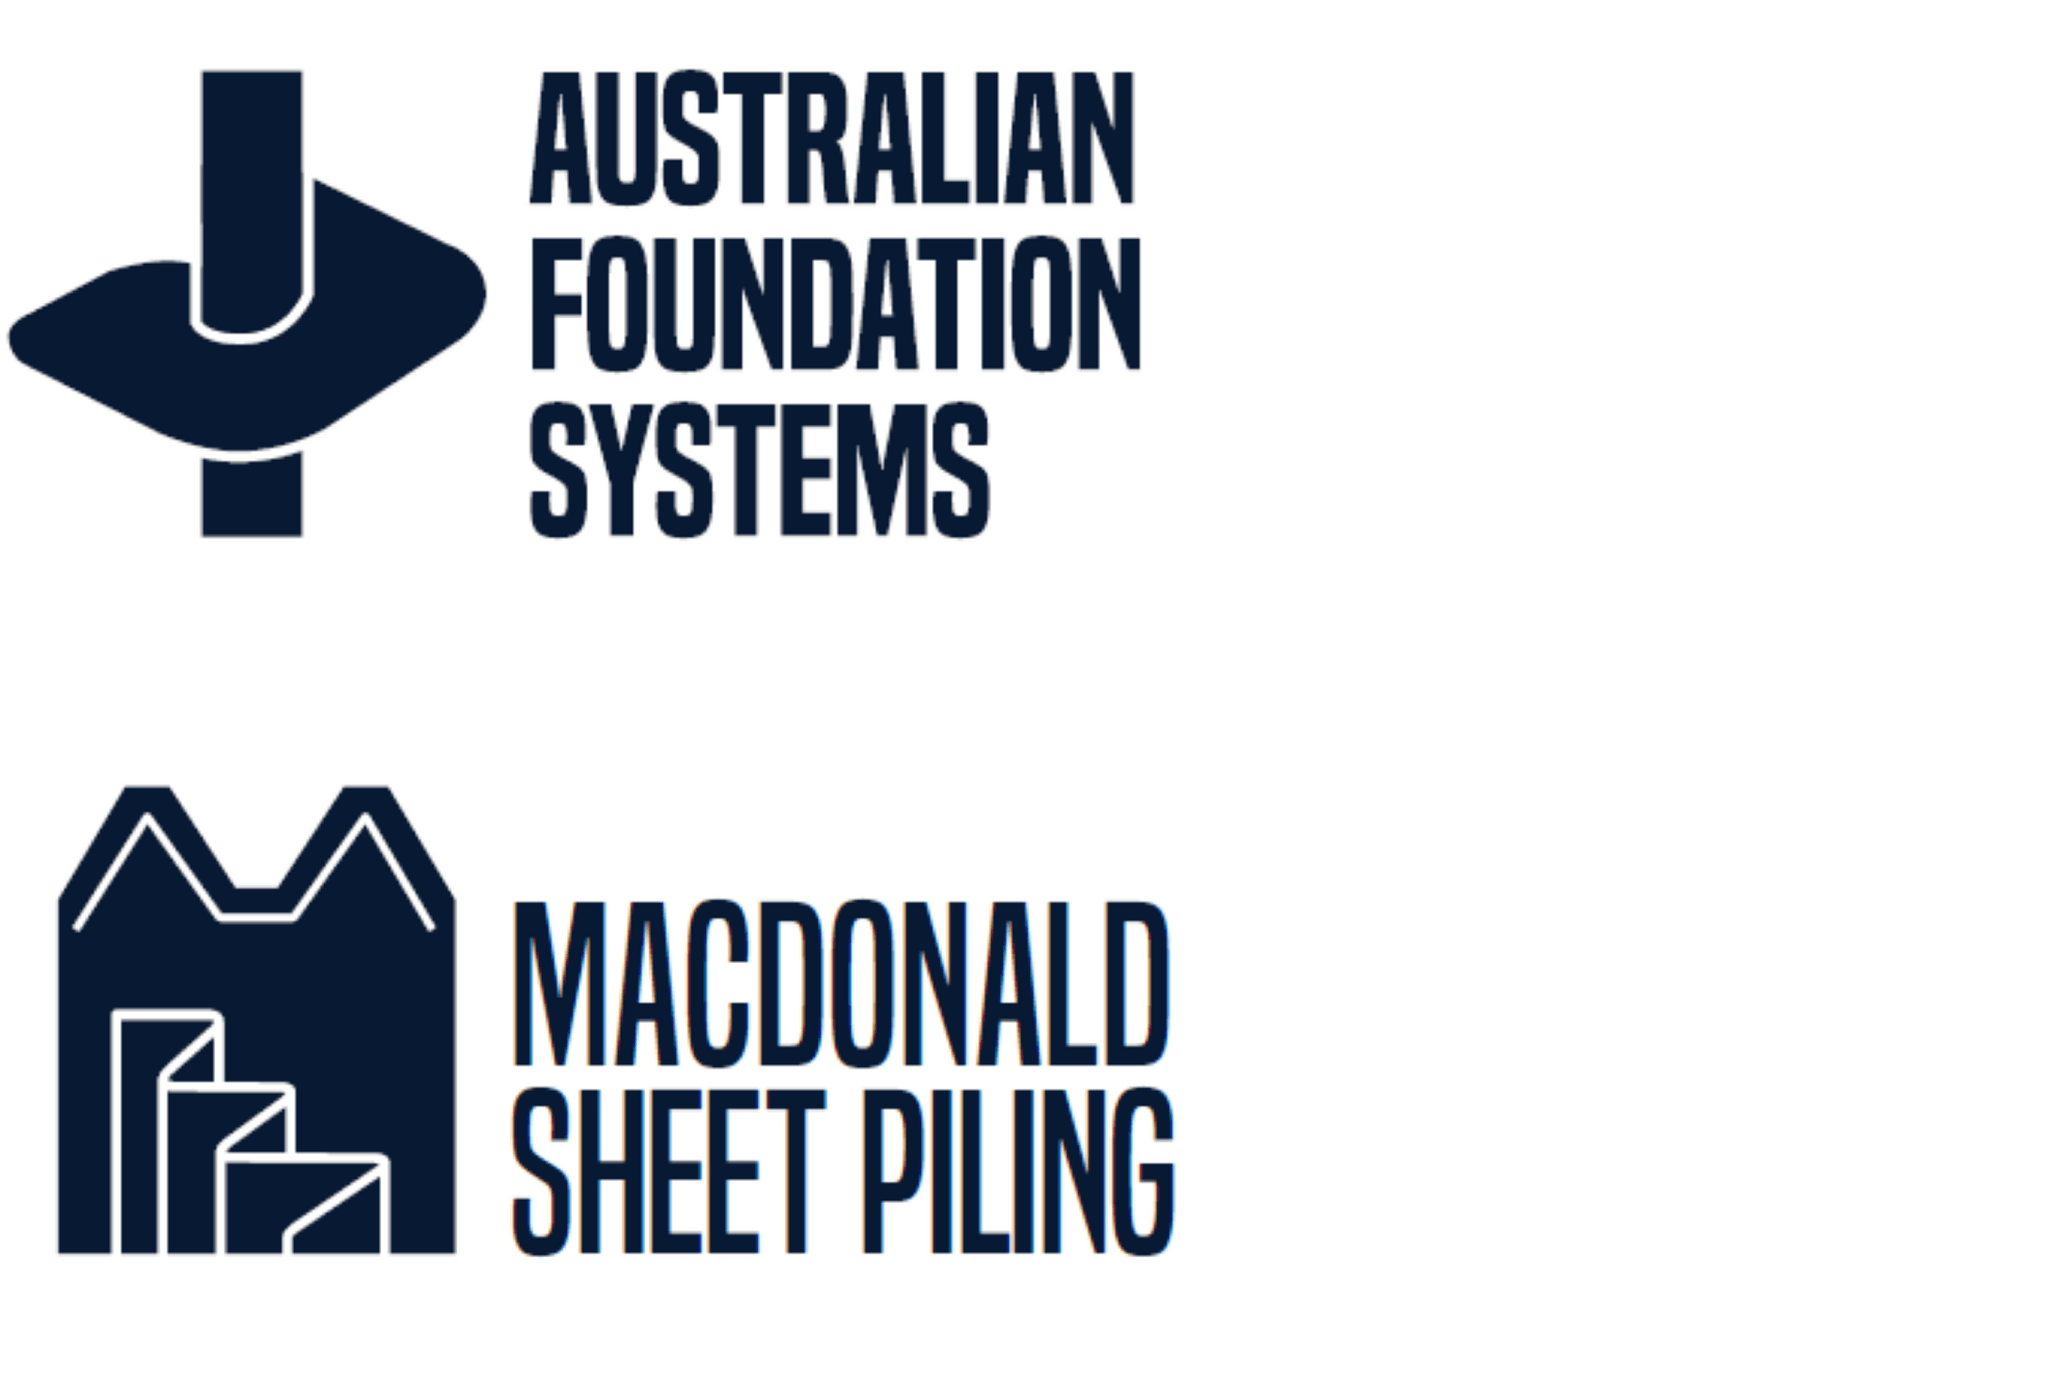 Australian Foundation Systems Ltd